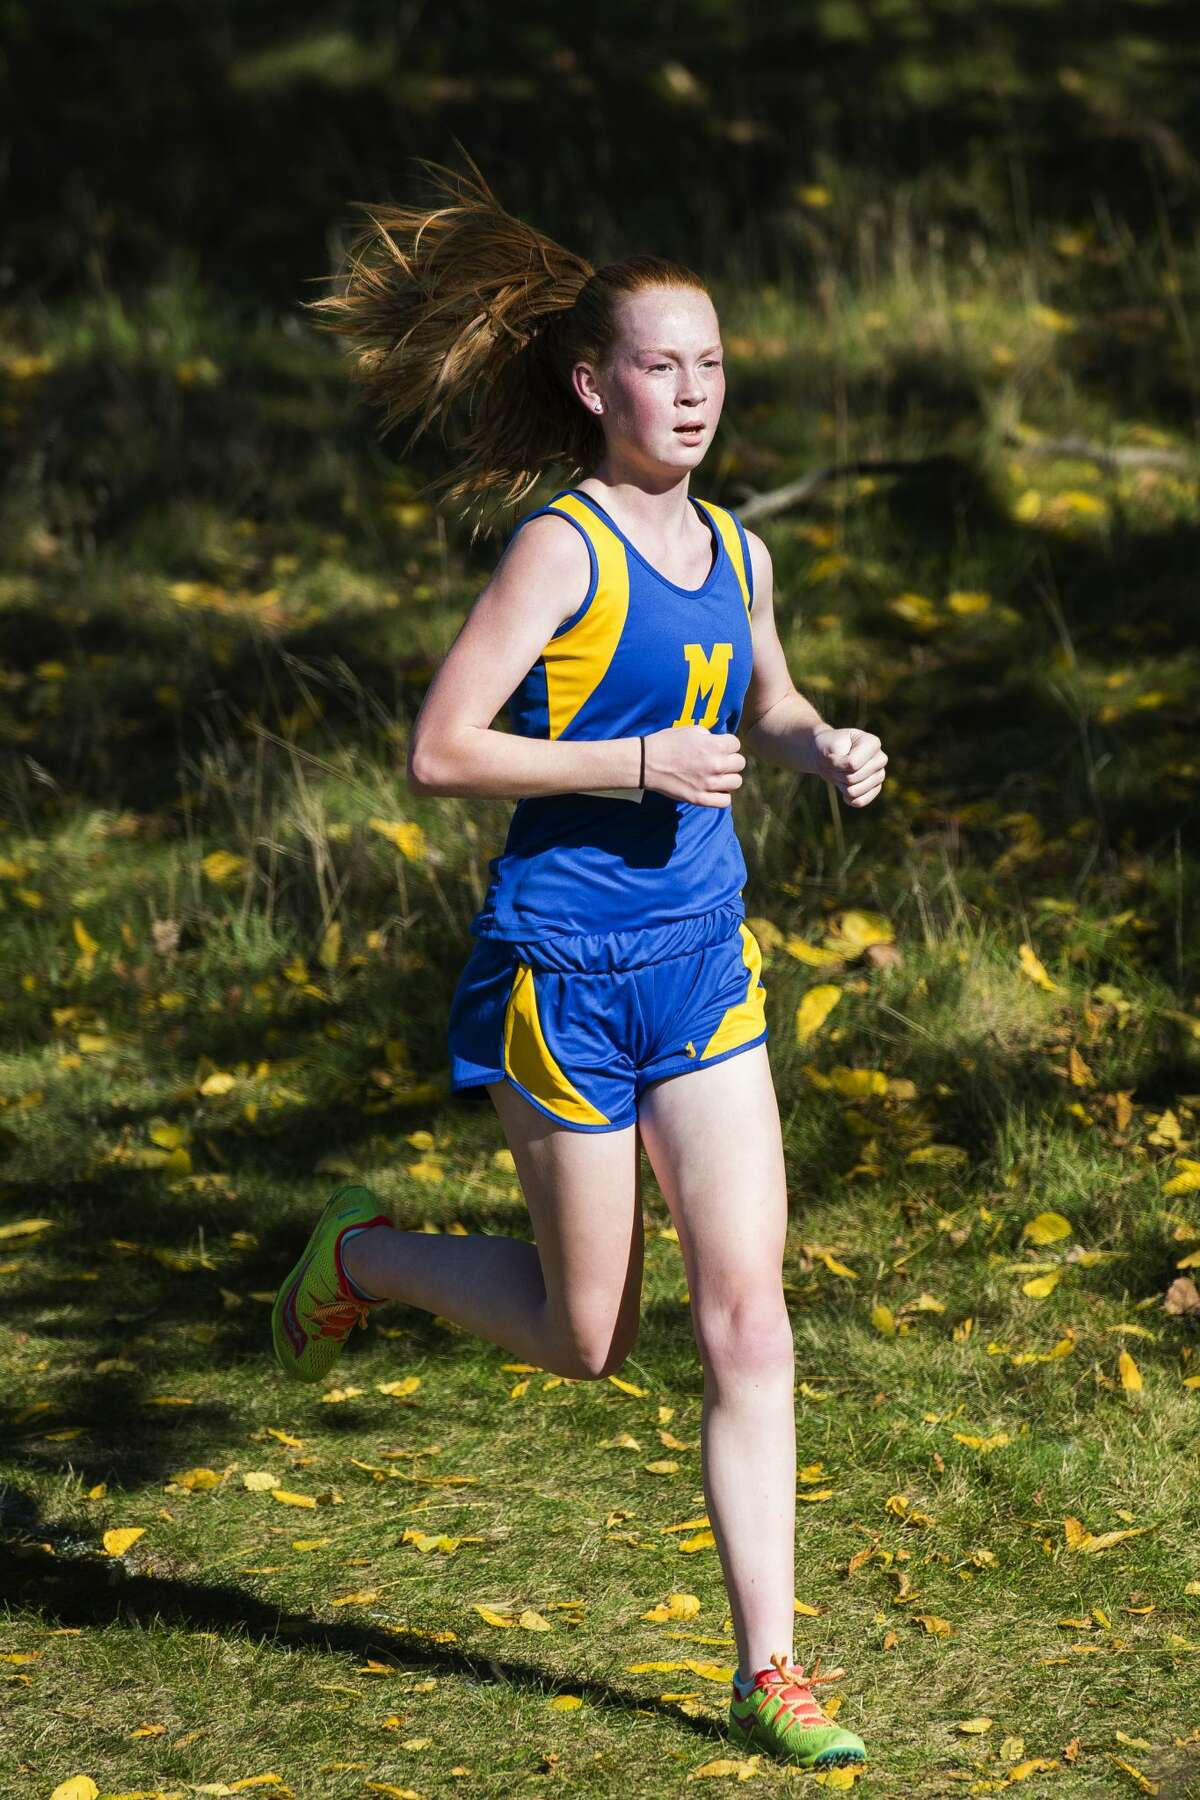 Midland's Emma Rudisel races during a Saginaw Valley League cross country meet in Mount Pleasant on Wednesday, Oct. 18, 2017. (Danielle McGrew Tenbusch/for the Daily News)